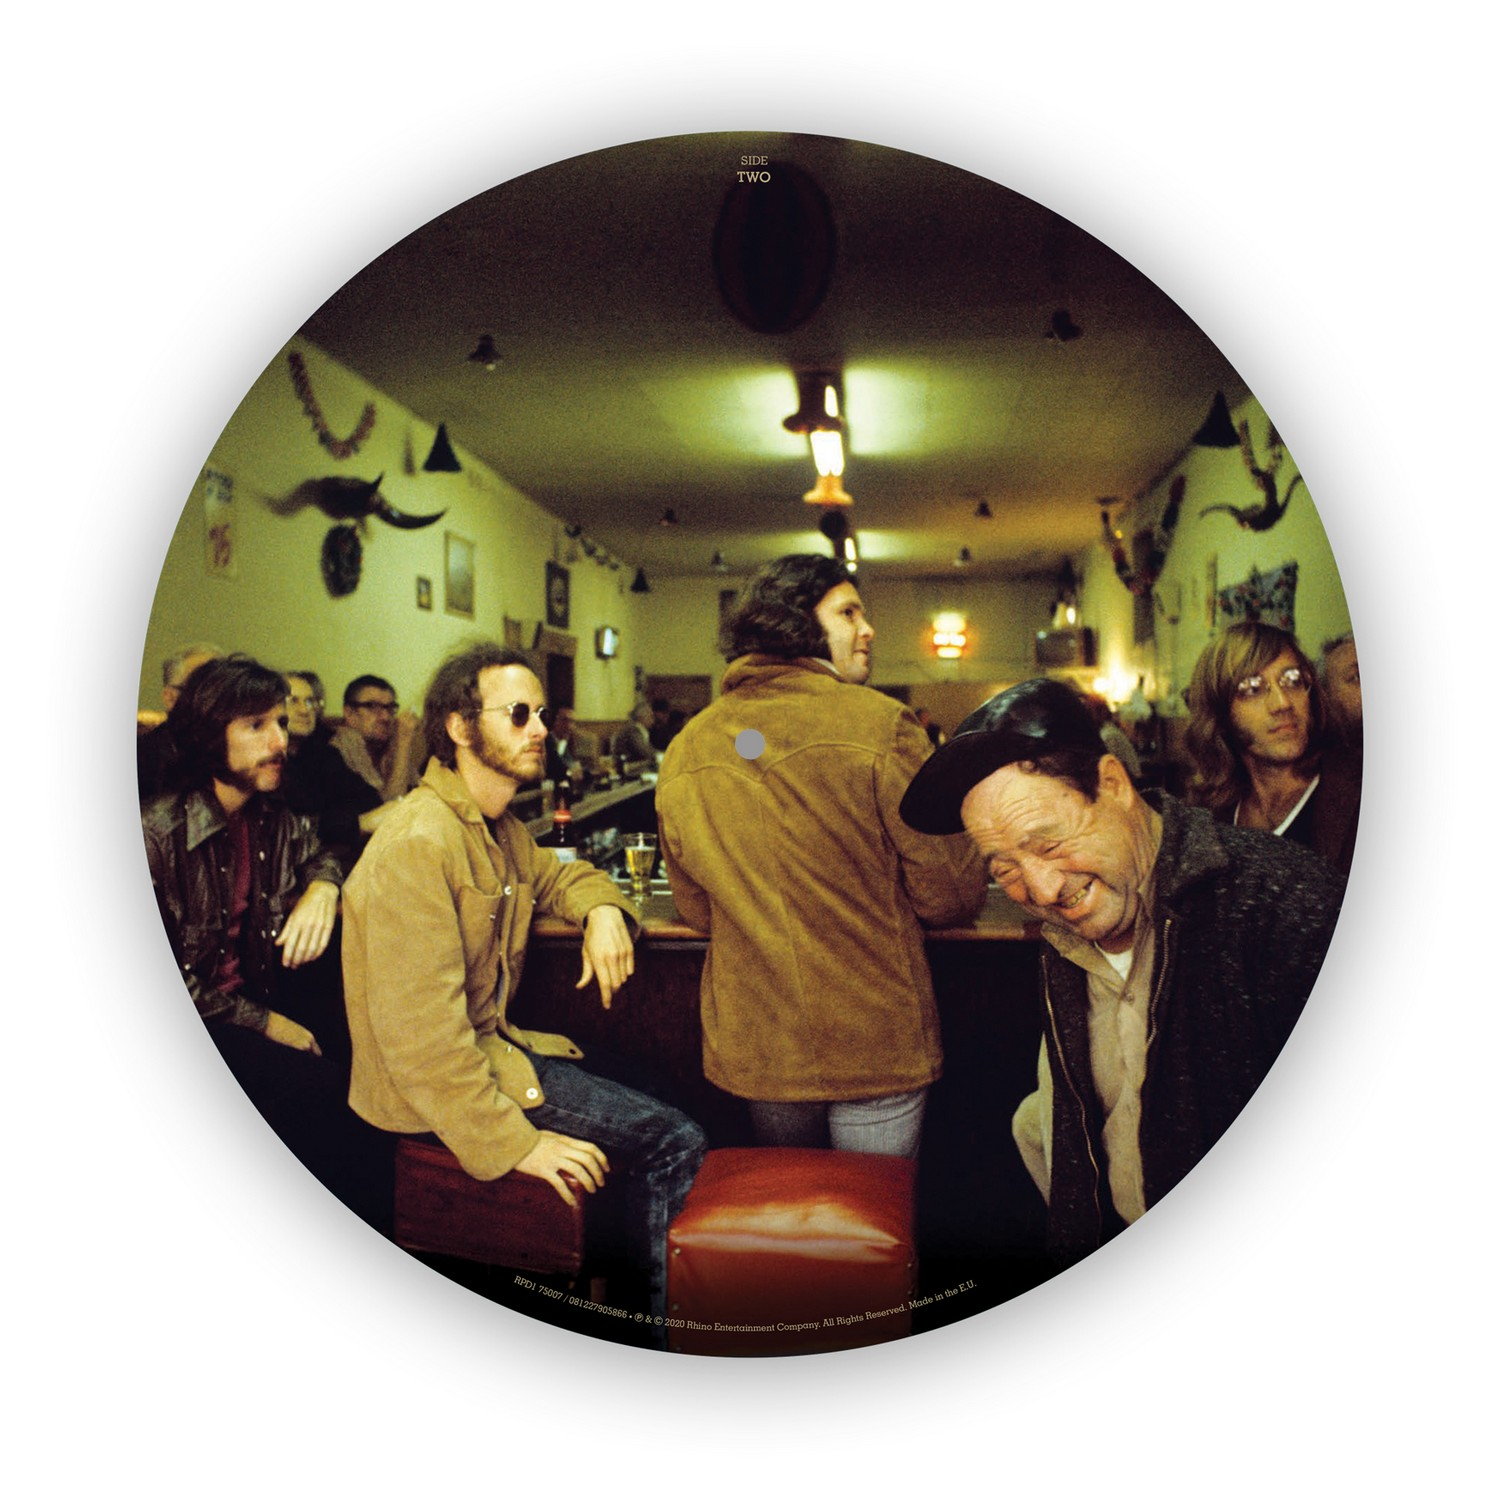 The Doors Morrison Hotel picture disc 01